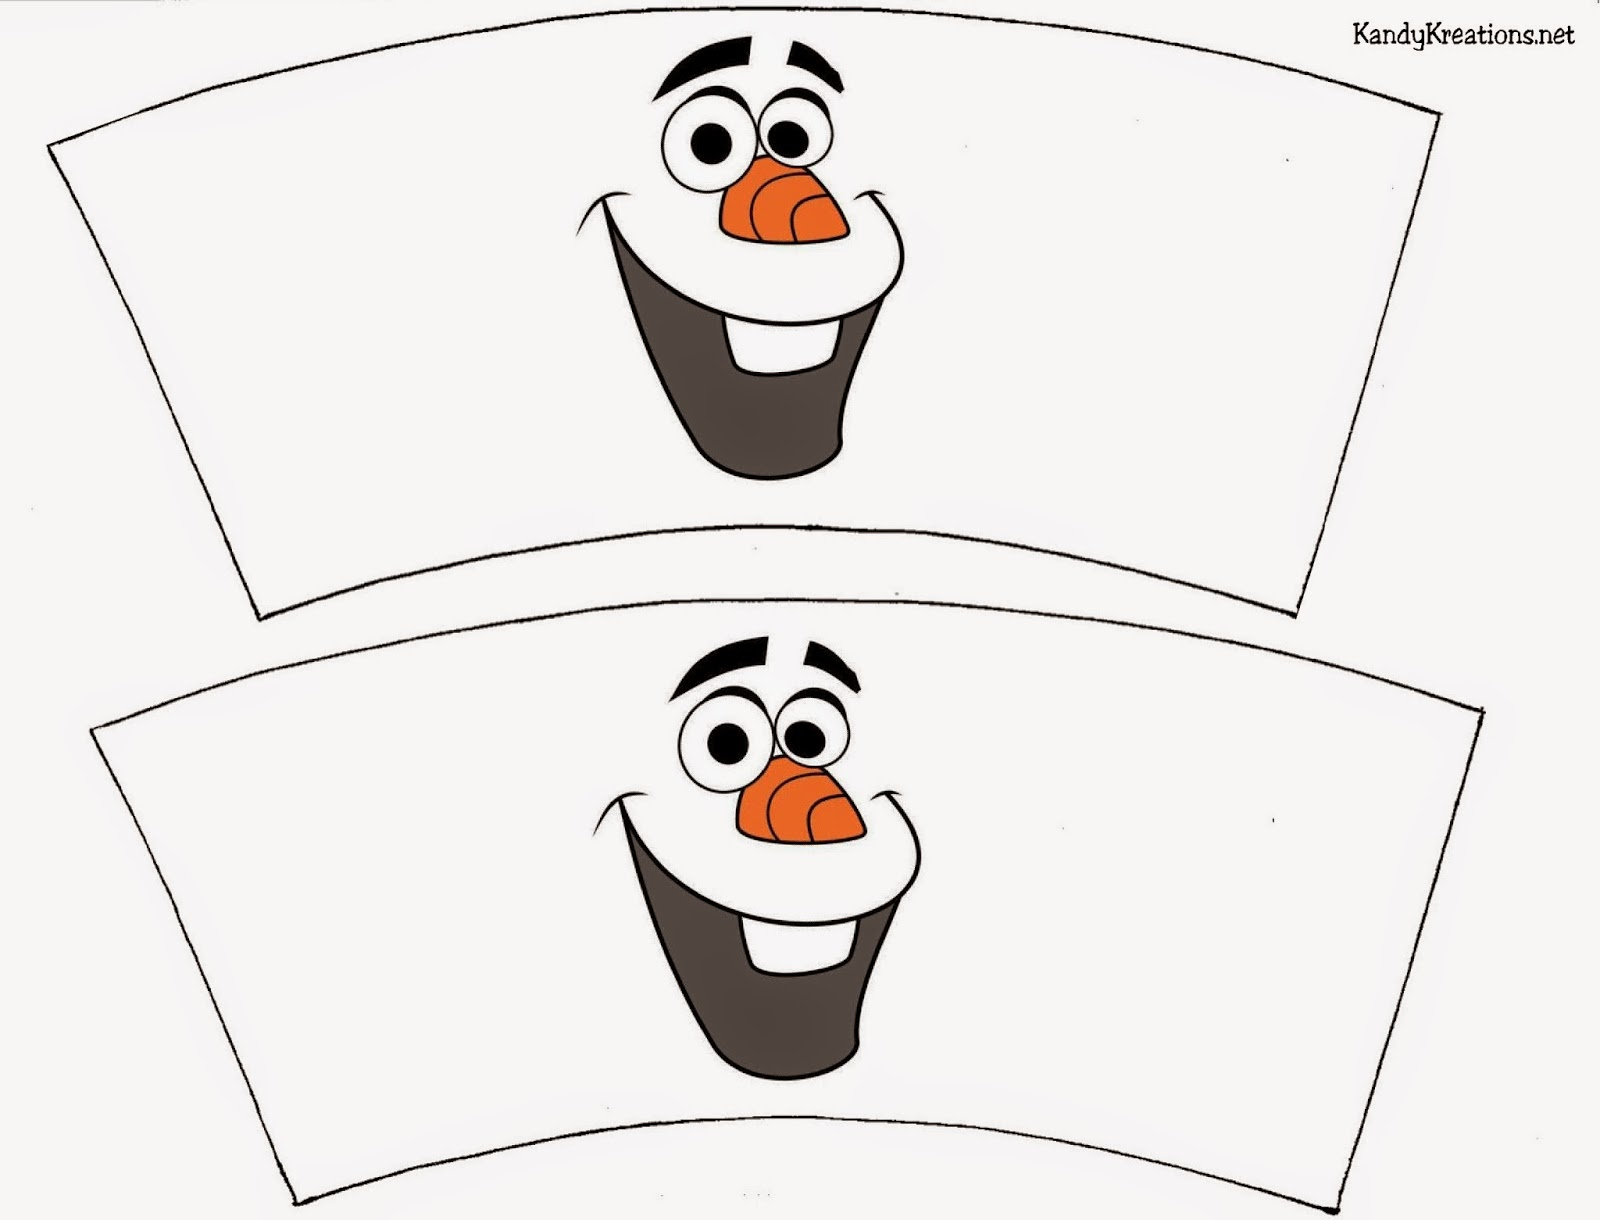 Spice up your party drinks and snacks with this cute cup wrapper printable.  Olaf smiles from the wrapper to brighten up your Frozen birthday party.  It's quick, easy, and free to add your favorite snowman to the party